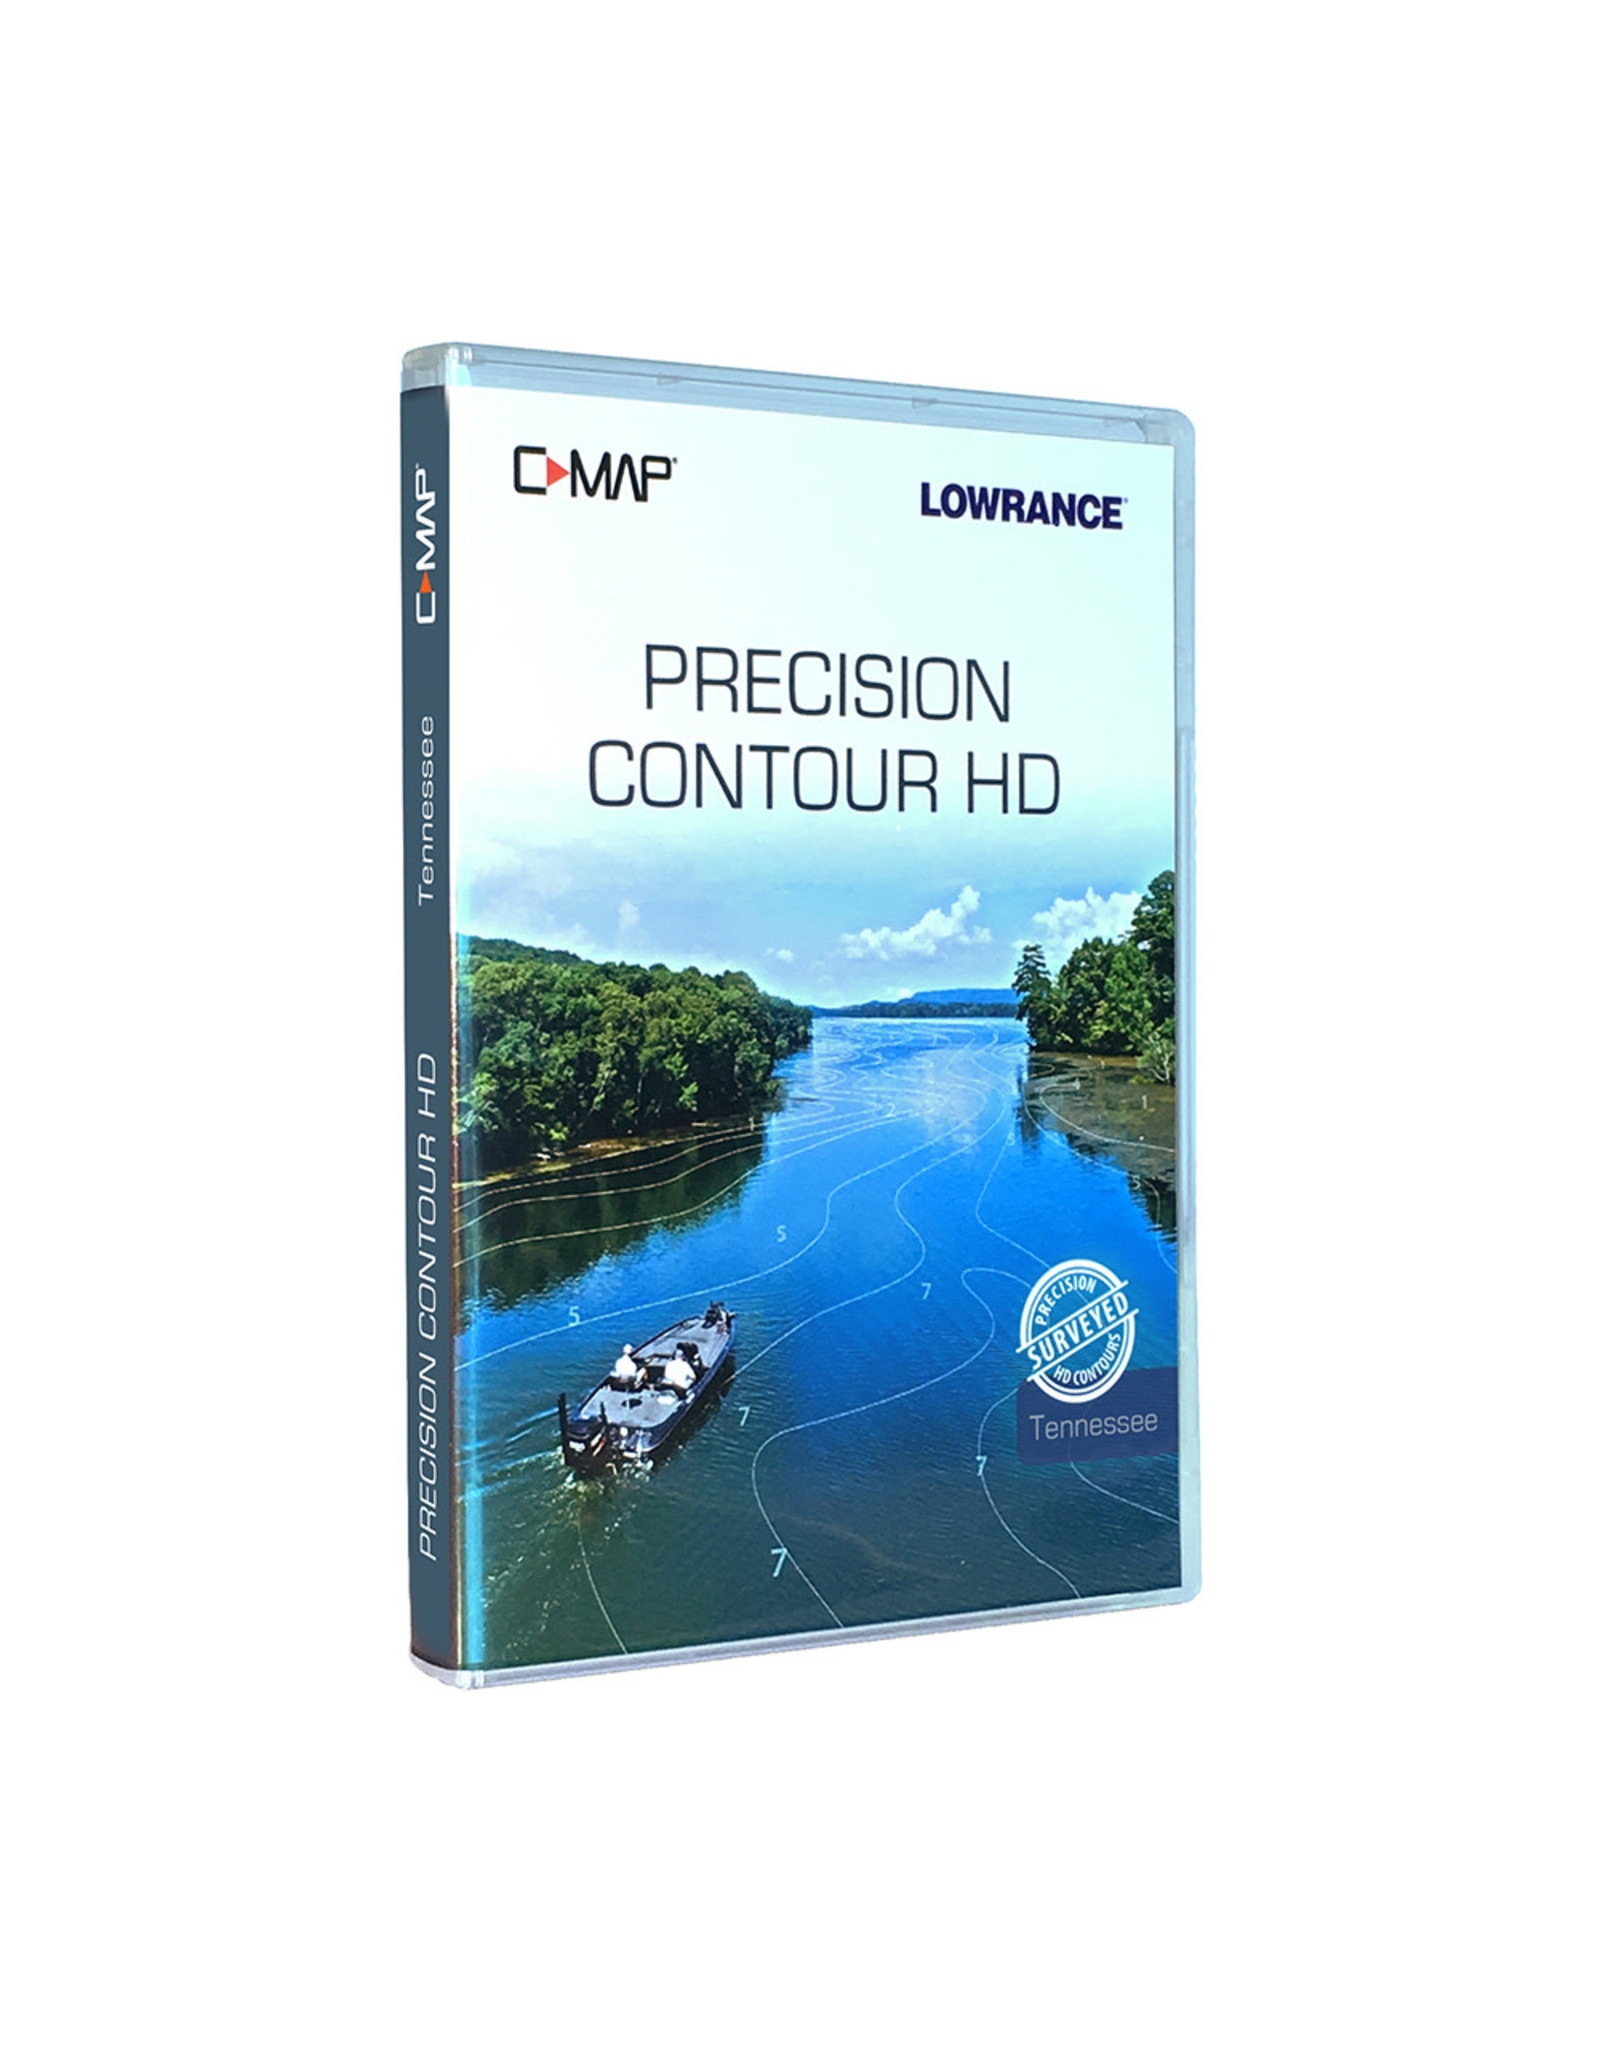 Lowrance C-MAP Precision Contour HD Chart - Tennessee